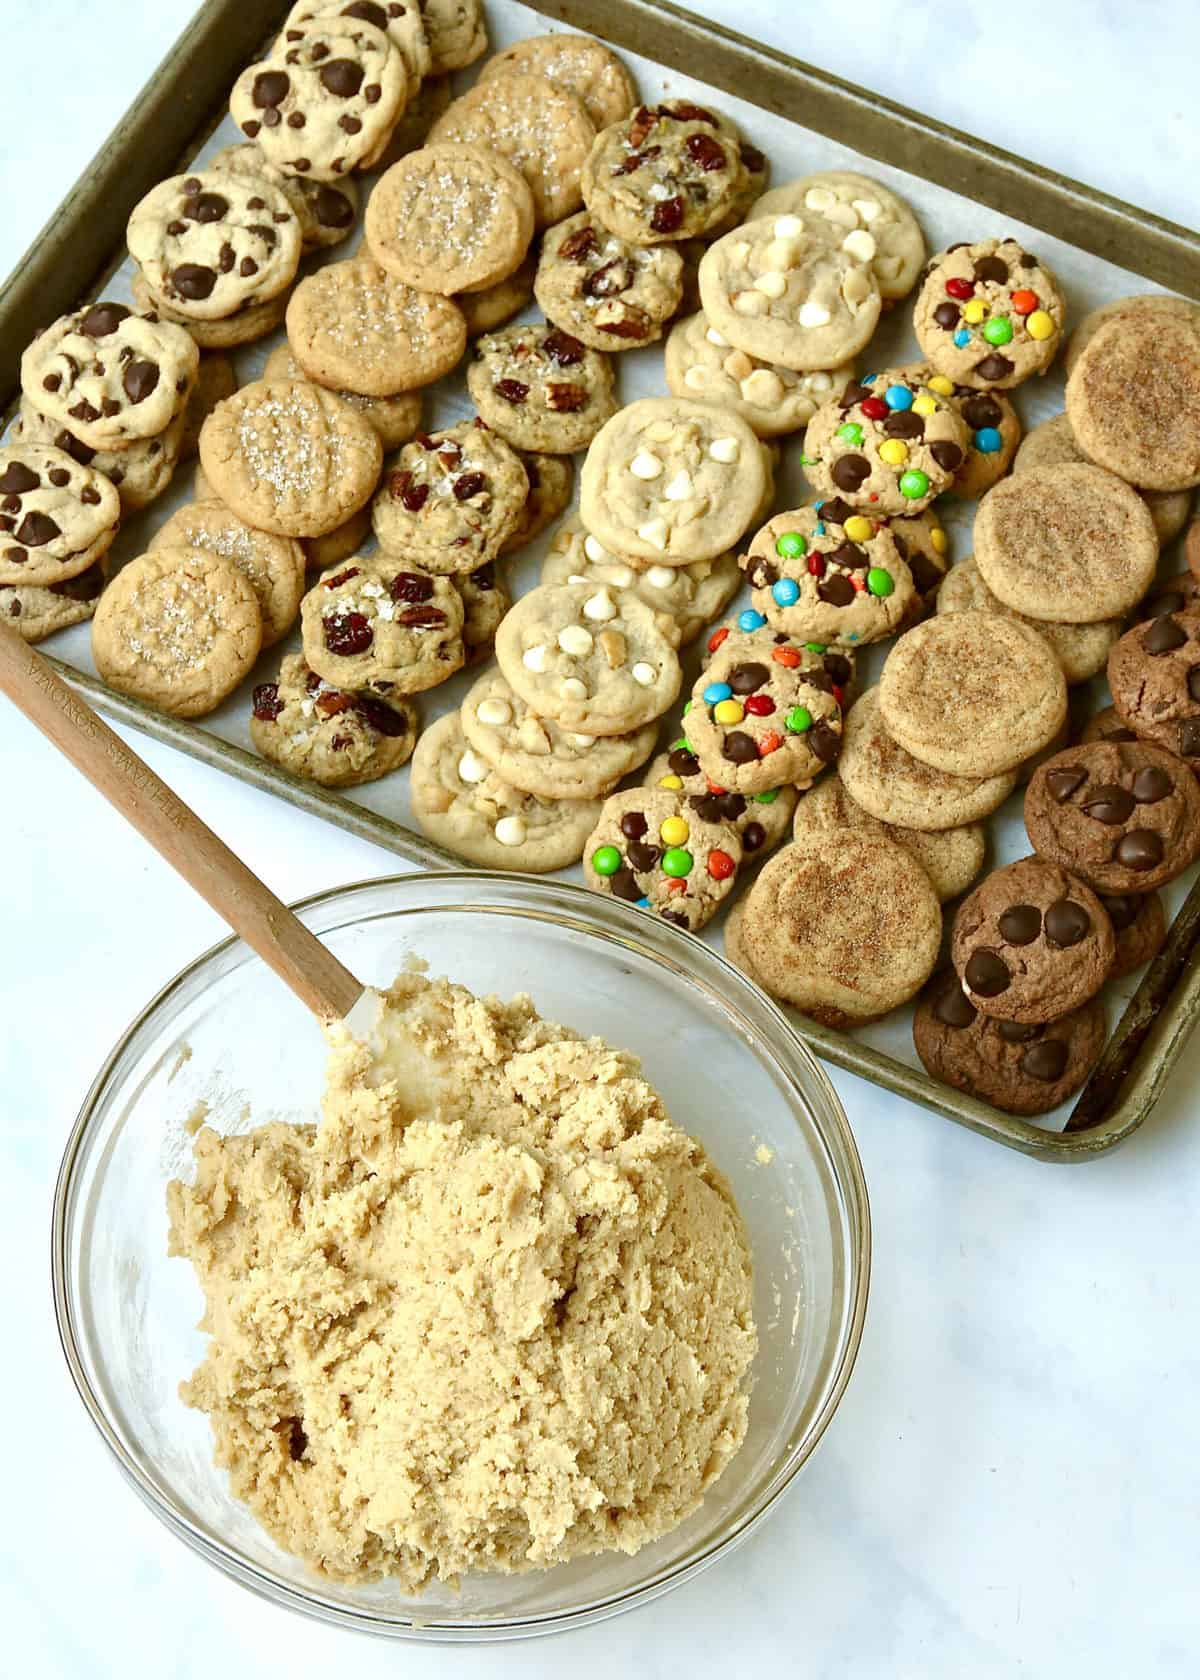 One Cookie Dough, Seven Possible Flavors